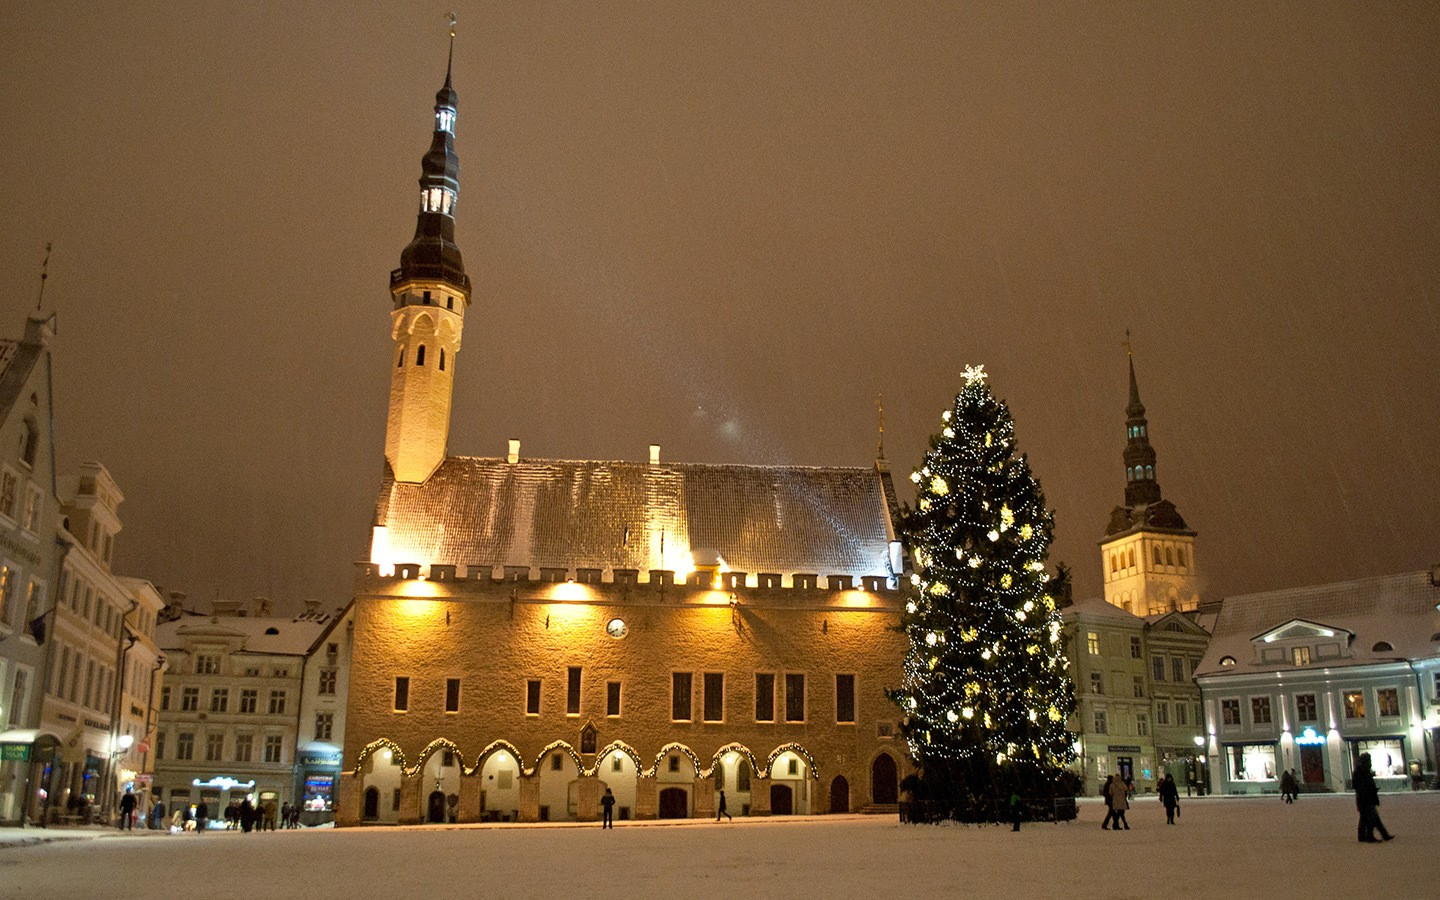 Tallinn Old Town Square by night